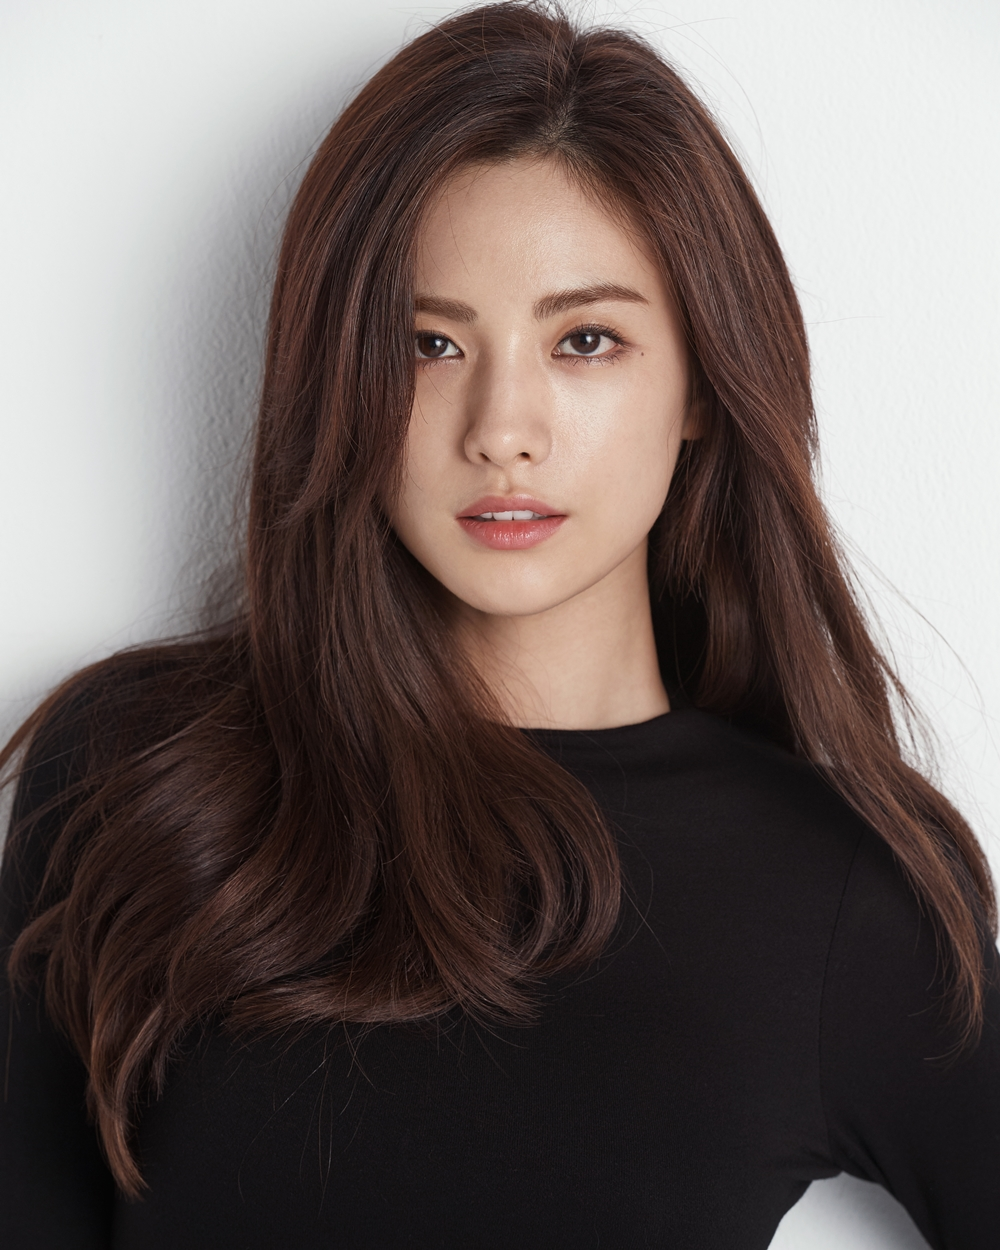 Nana confirmed to appear on Netflix 'Glitch' [Official]